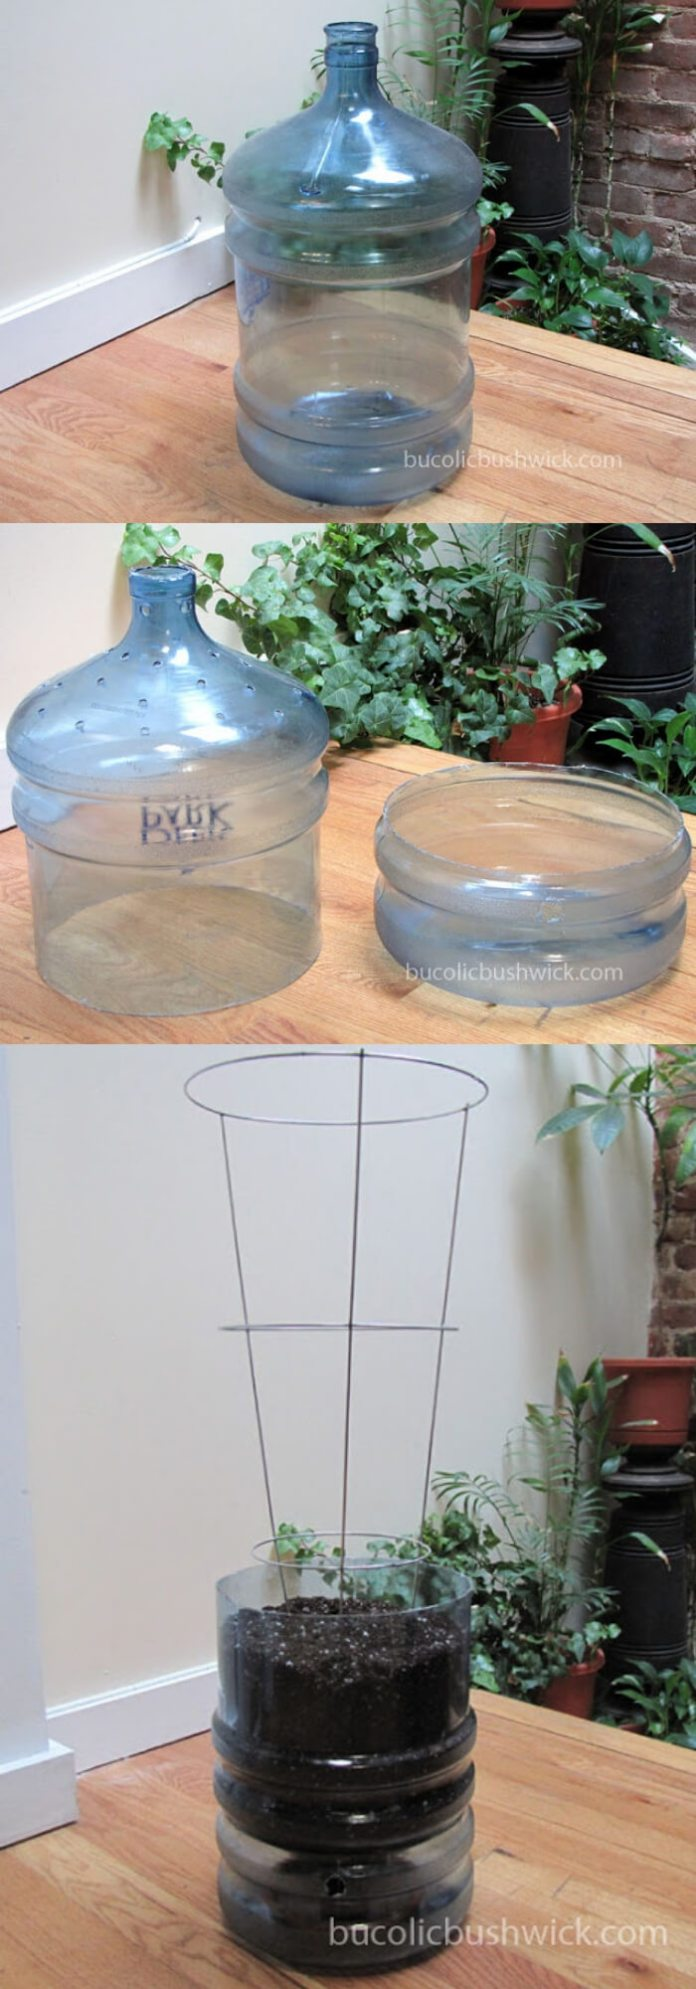 Self Watering Container | Best DIY Self-Watering System Ideas